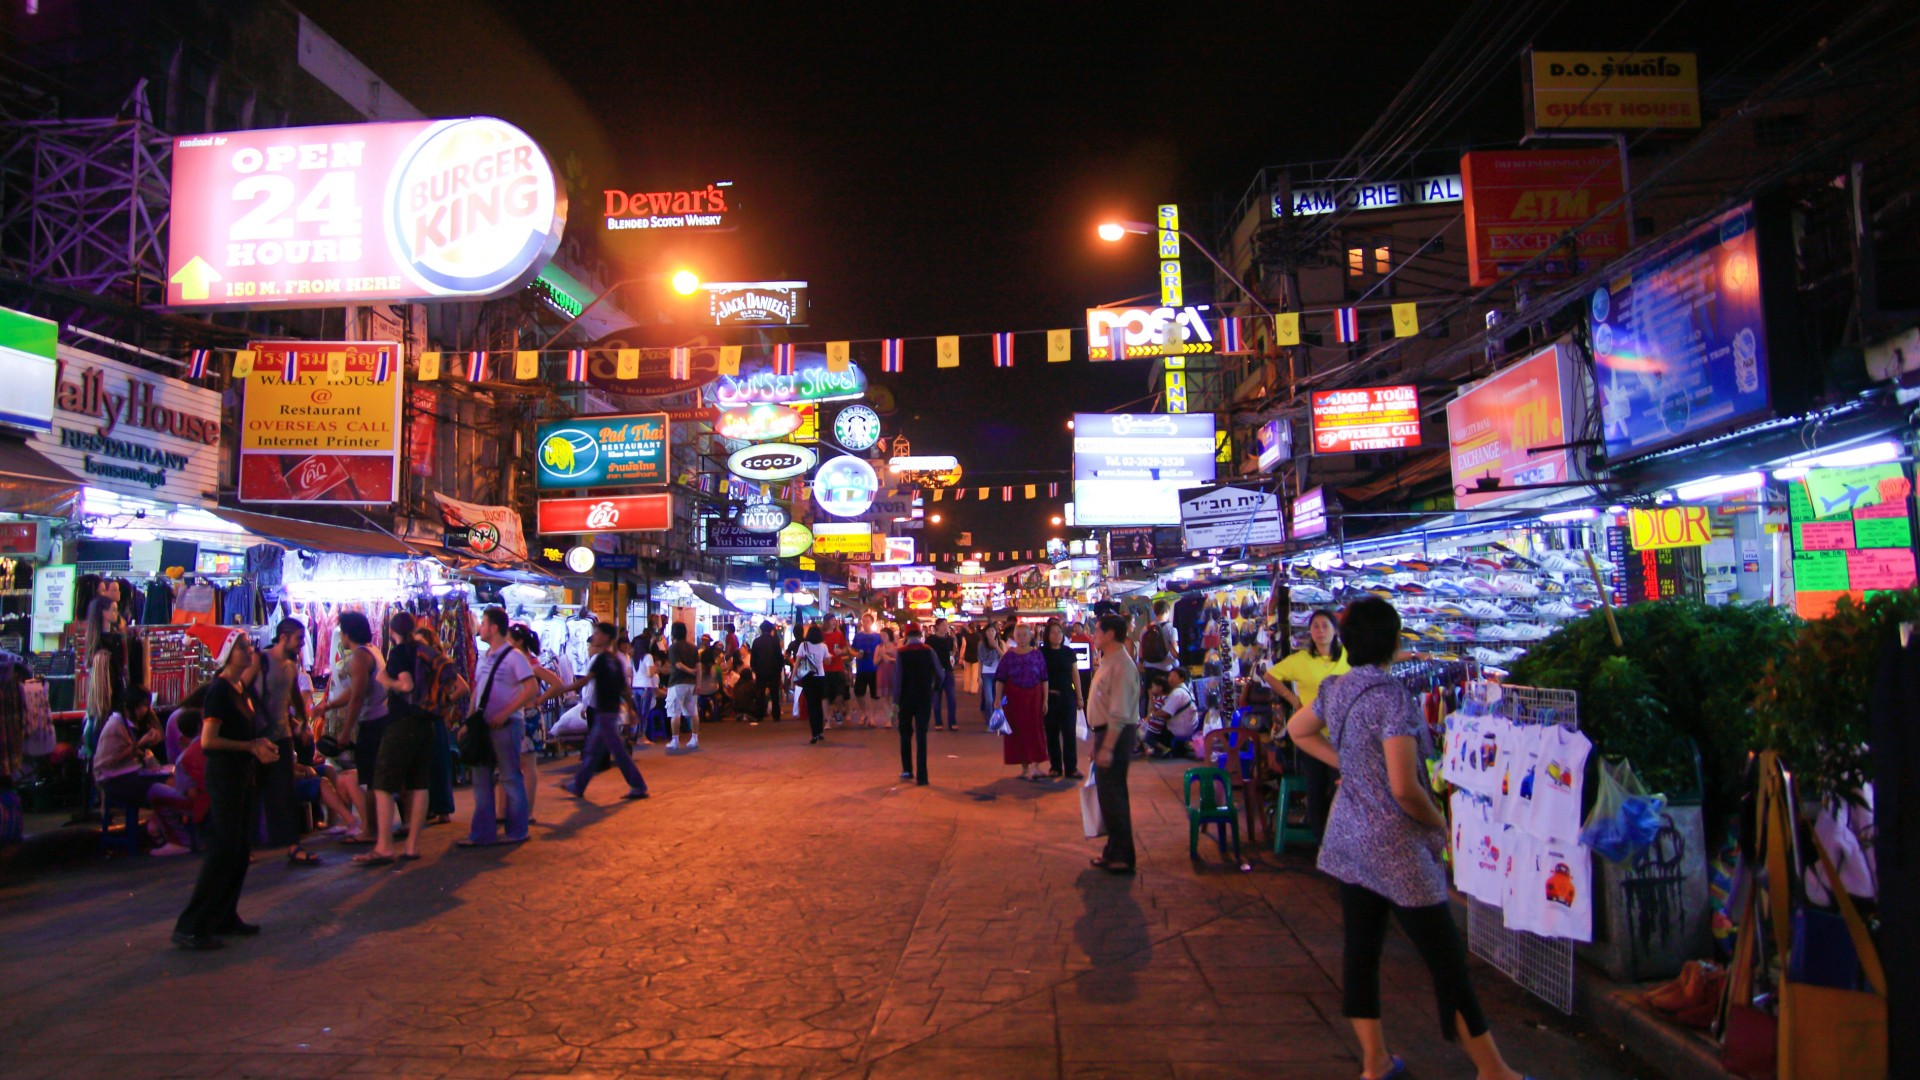 Khao San road is the most popular nightlife street in Bangkok for tourists. By the night the street is full of people, mostly tourists.